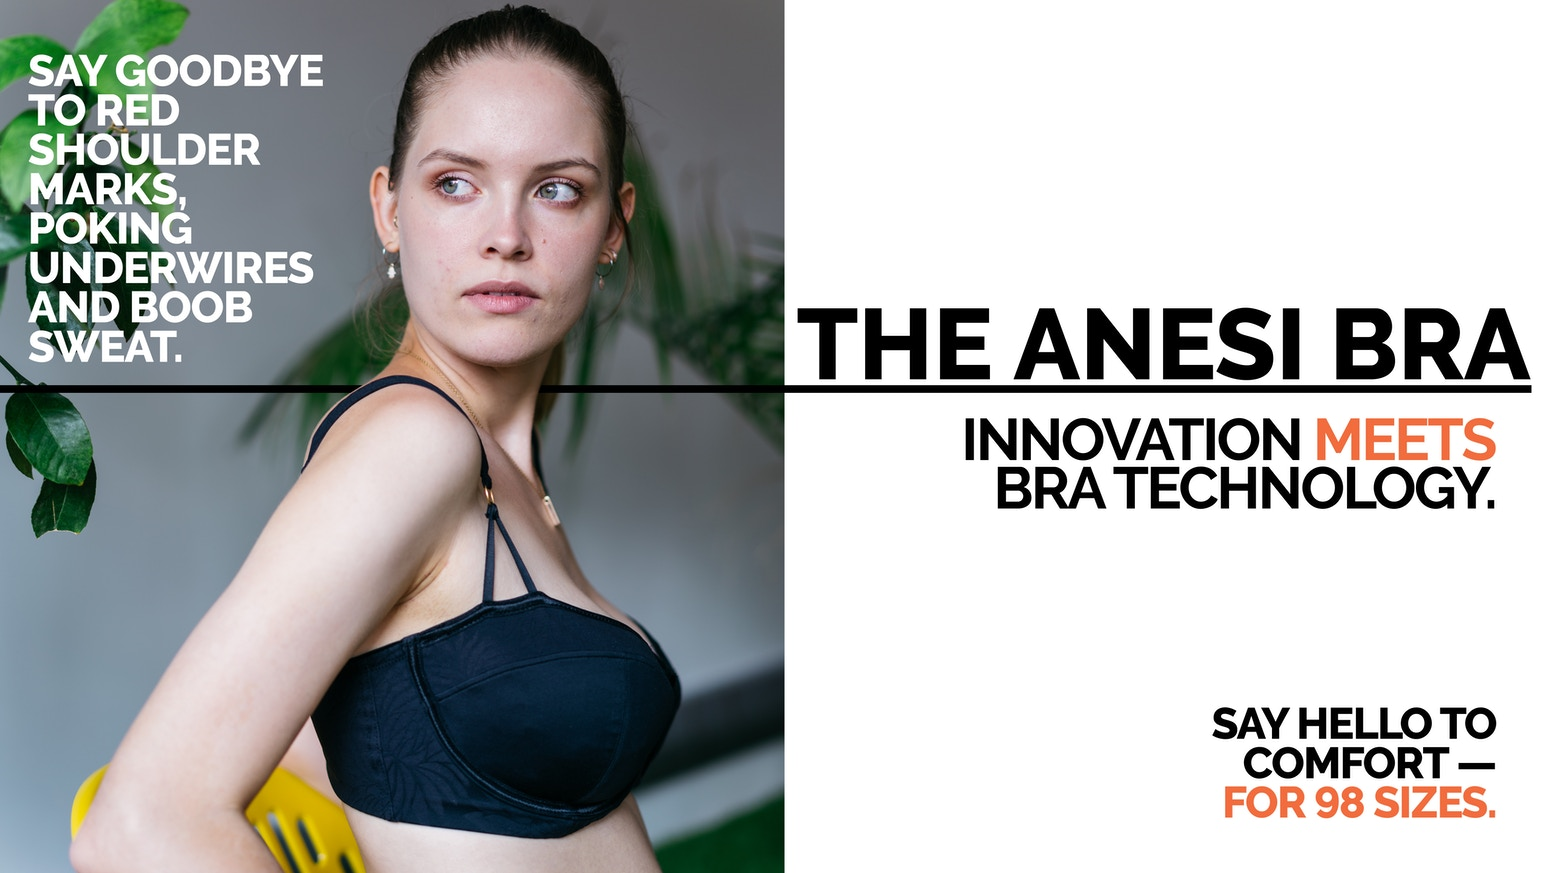 Our bra adapts up to 2 cups and 2 band sizes - to fit your ever-changing boobs every day of the month.